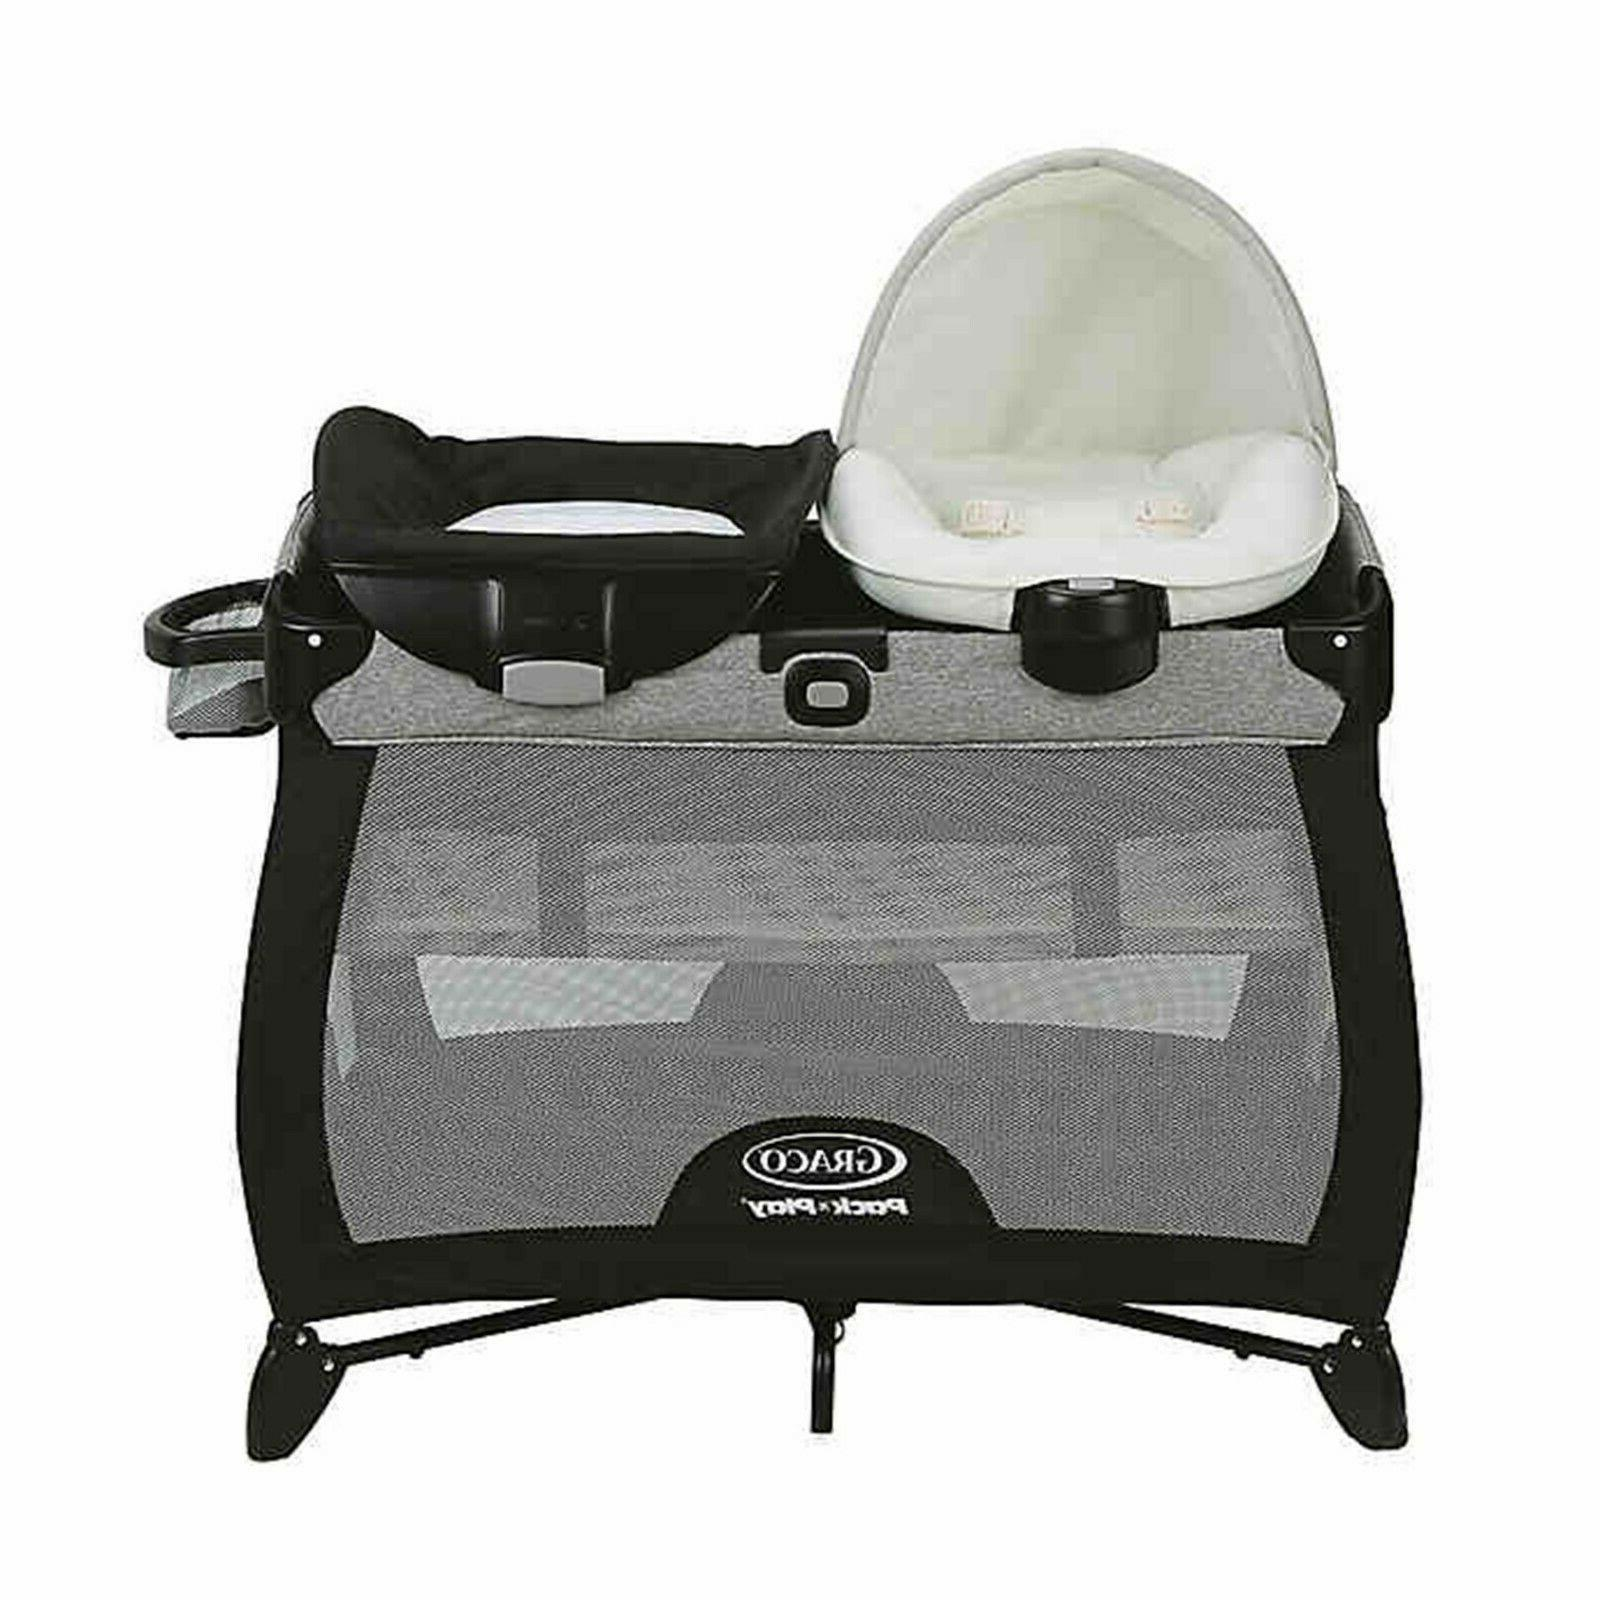 Graco Baby Stroller Travel System with Car Se